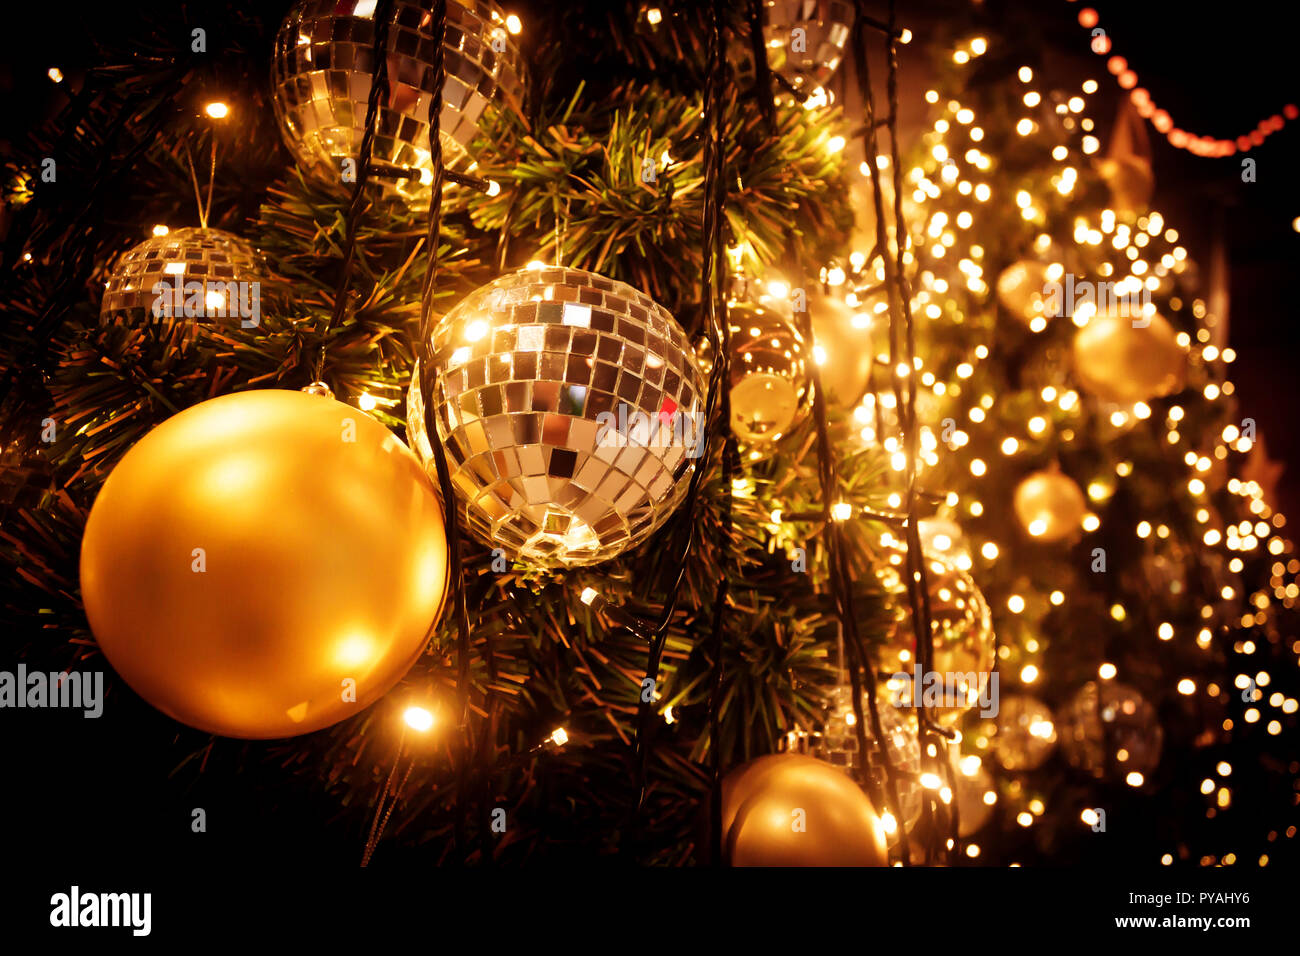 Christmas Tree With Gold Ball And Bokeh Lights Background Xmas Abstract Close Up With Glowing Decorations Outdoors